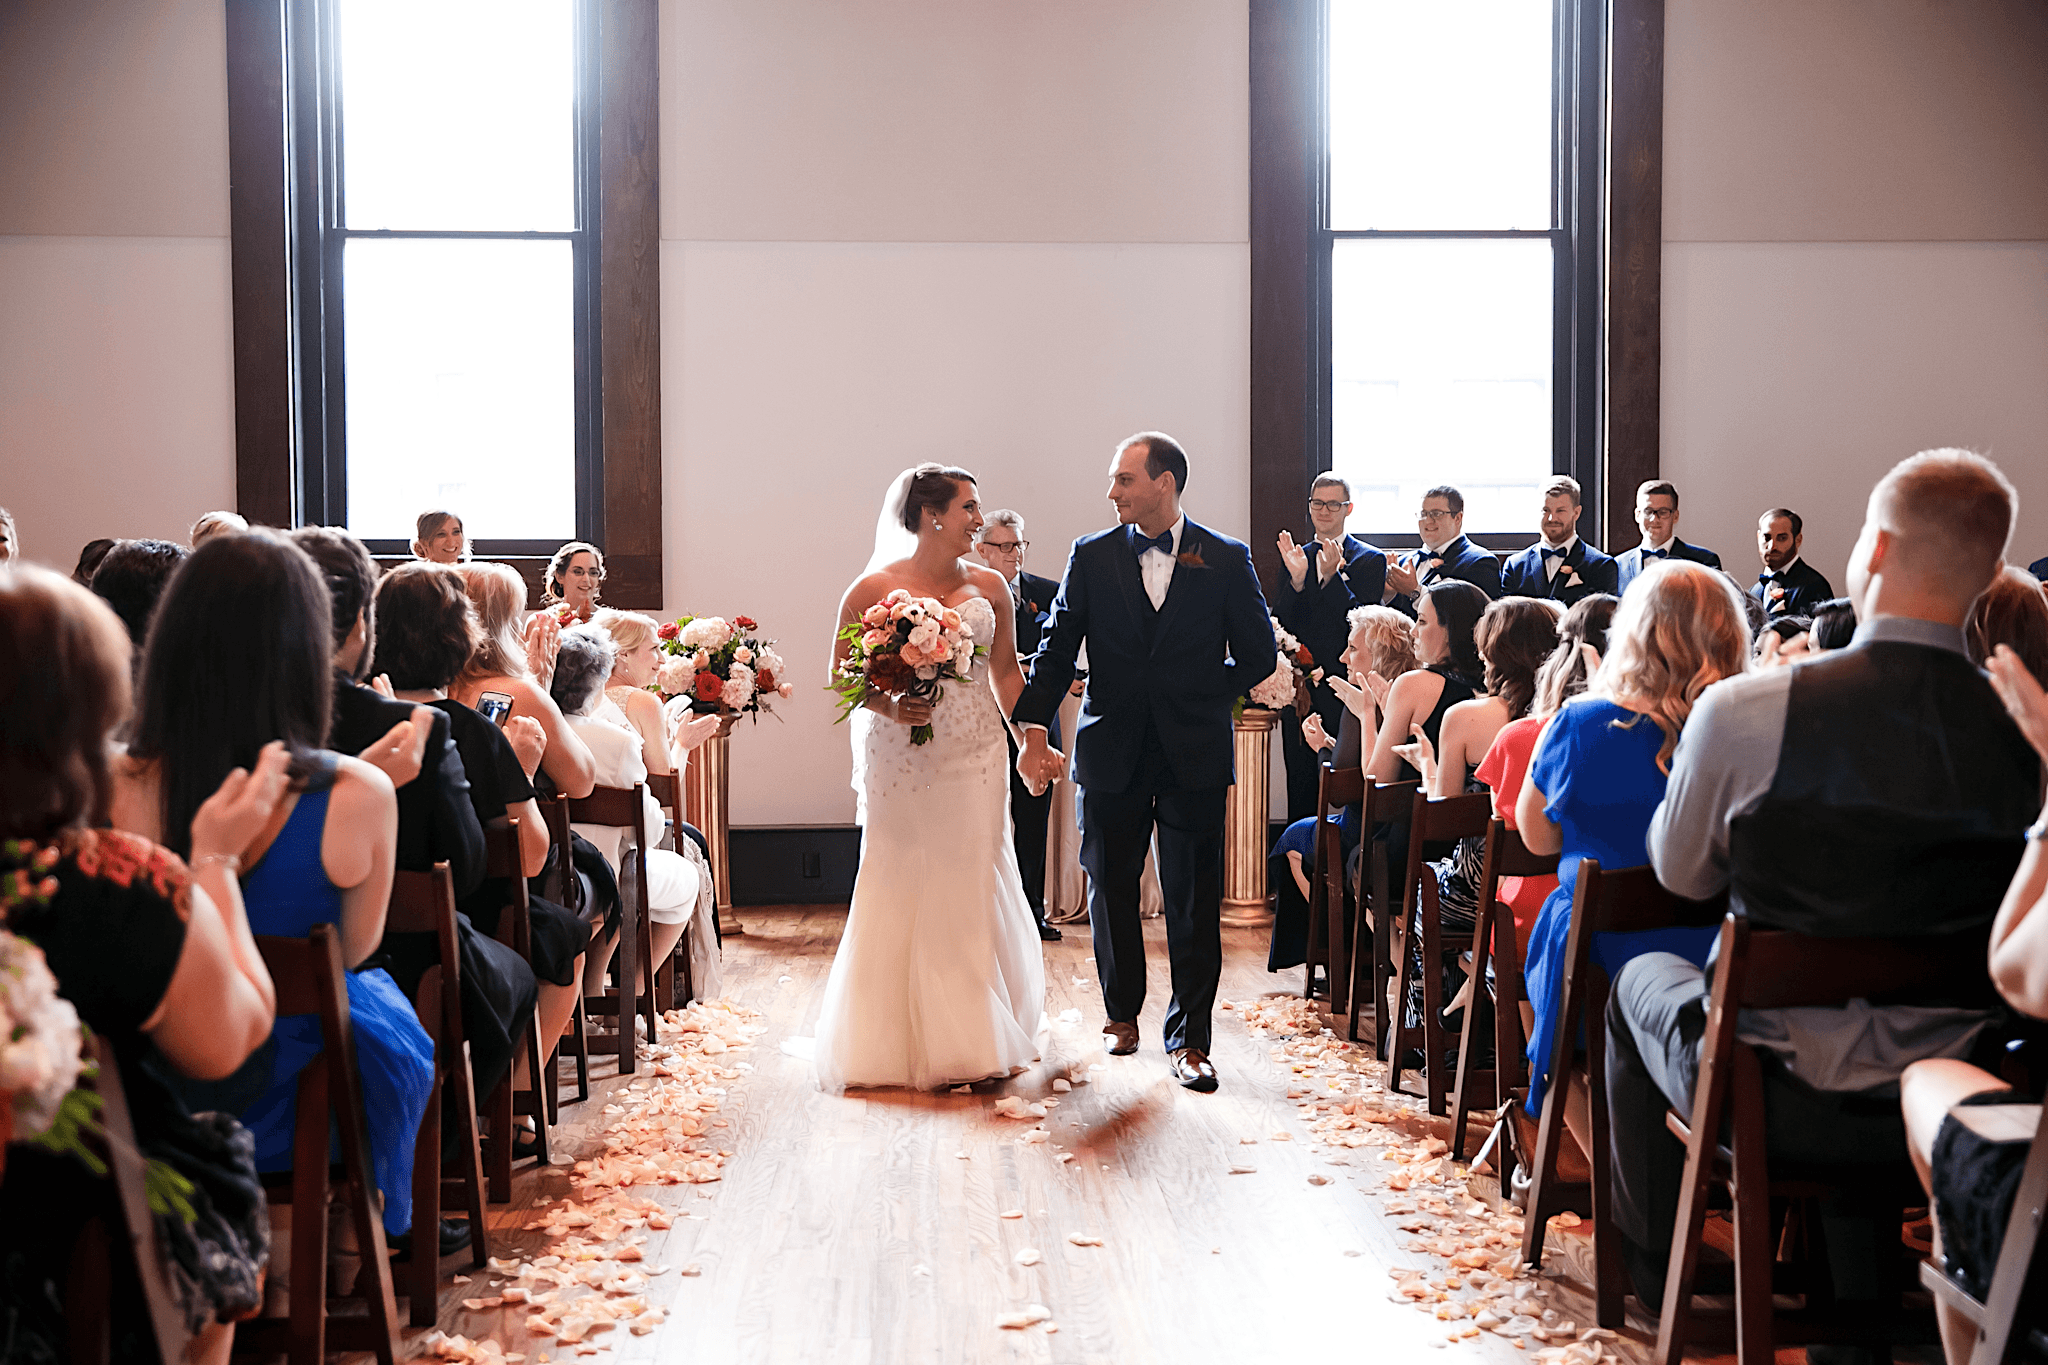 A glamorous, travel themed wedding at The Bell Tower.